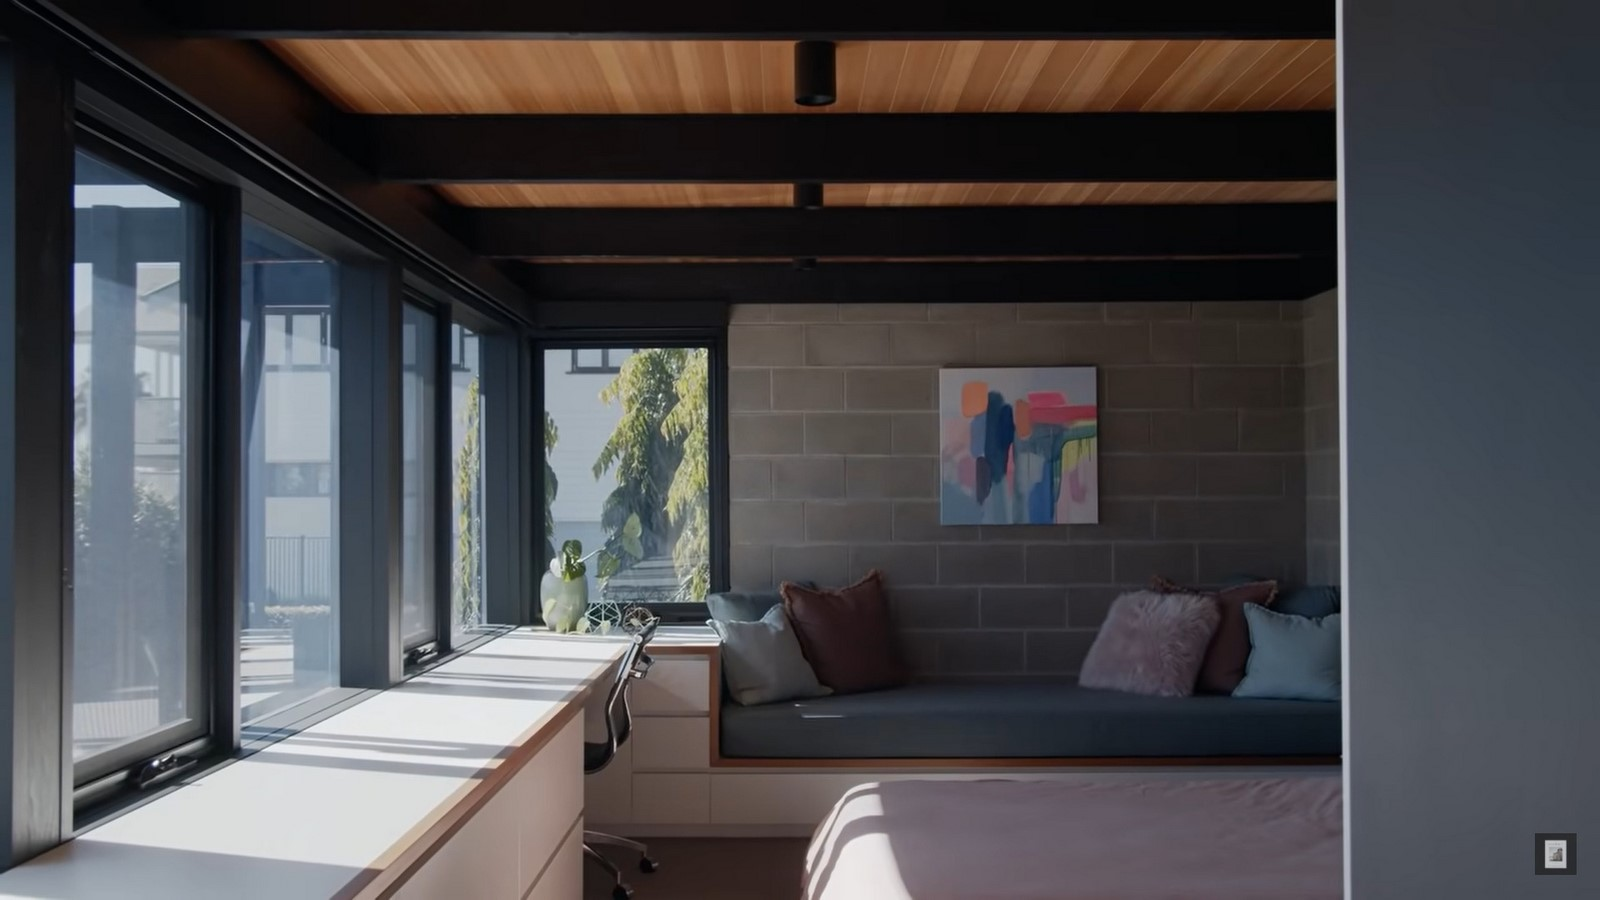 Chambers House by Shaun Lockyer Architects: Raw, Crafted, Modernist building - Sheet5